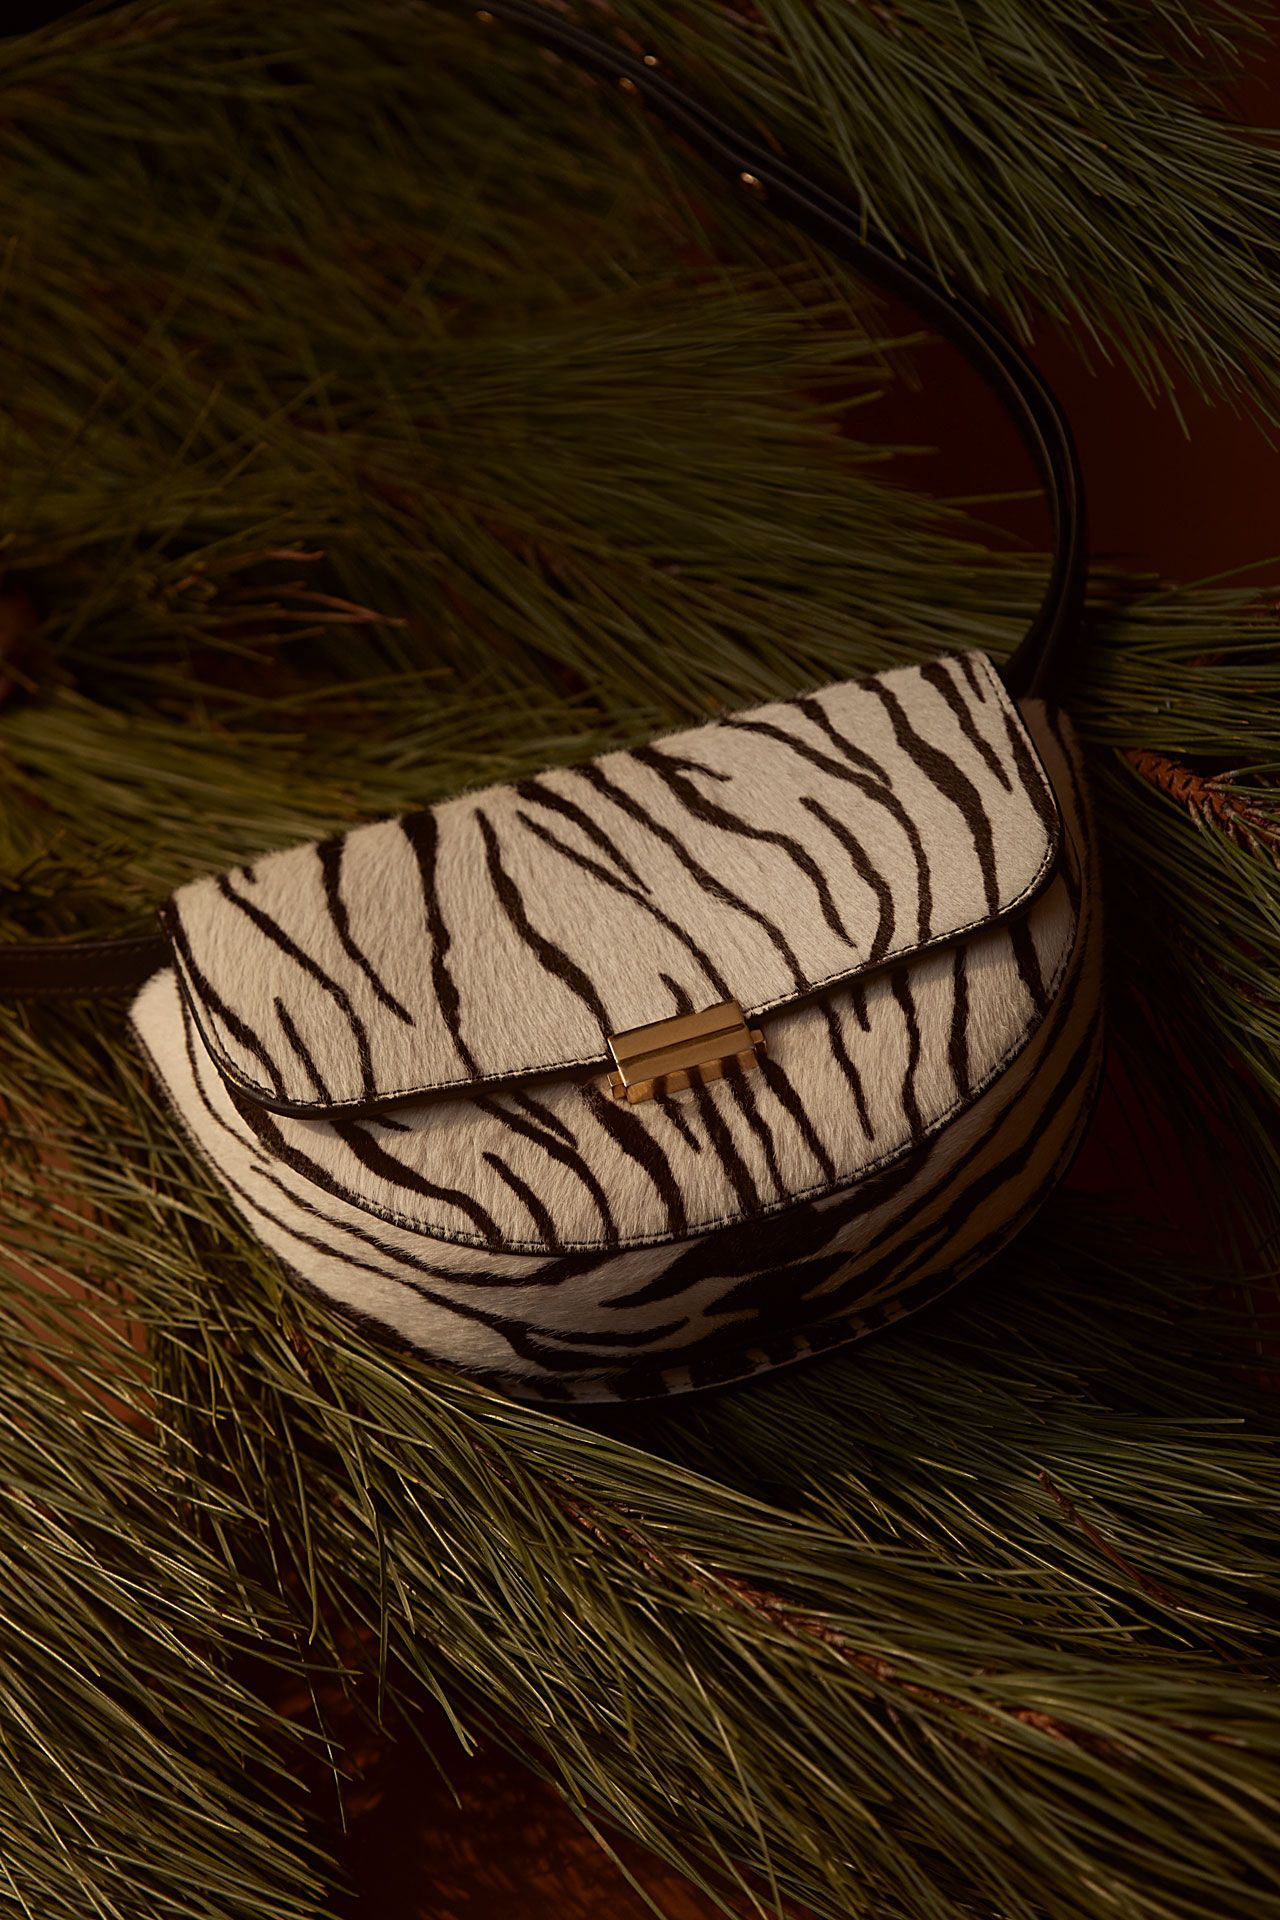 zebra fur covered purse on pine branches photographed by Kelly Jacob for LEV